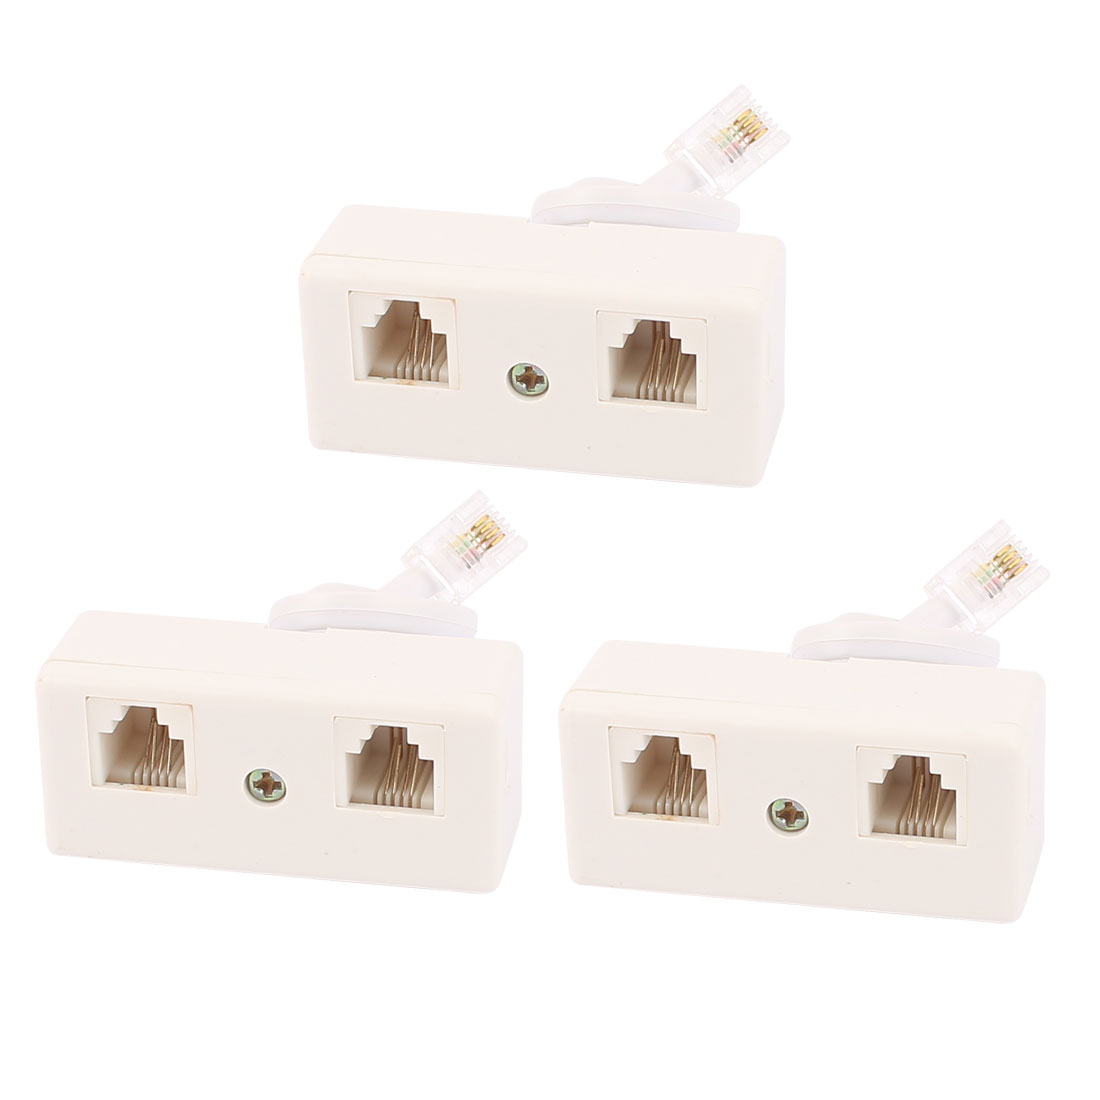 3Pcs RJ11 6P4C US Male to US Dual Female Connector Telephone Cable Adapter